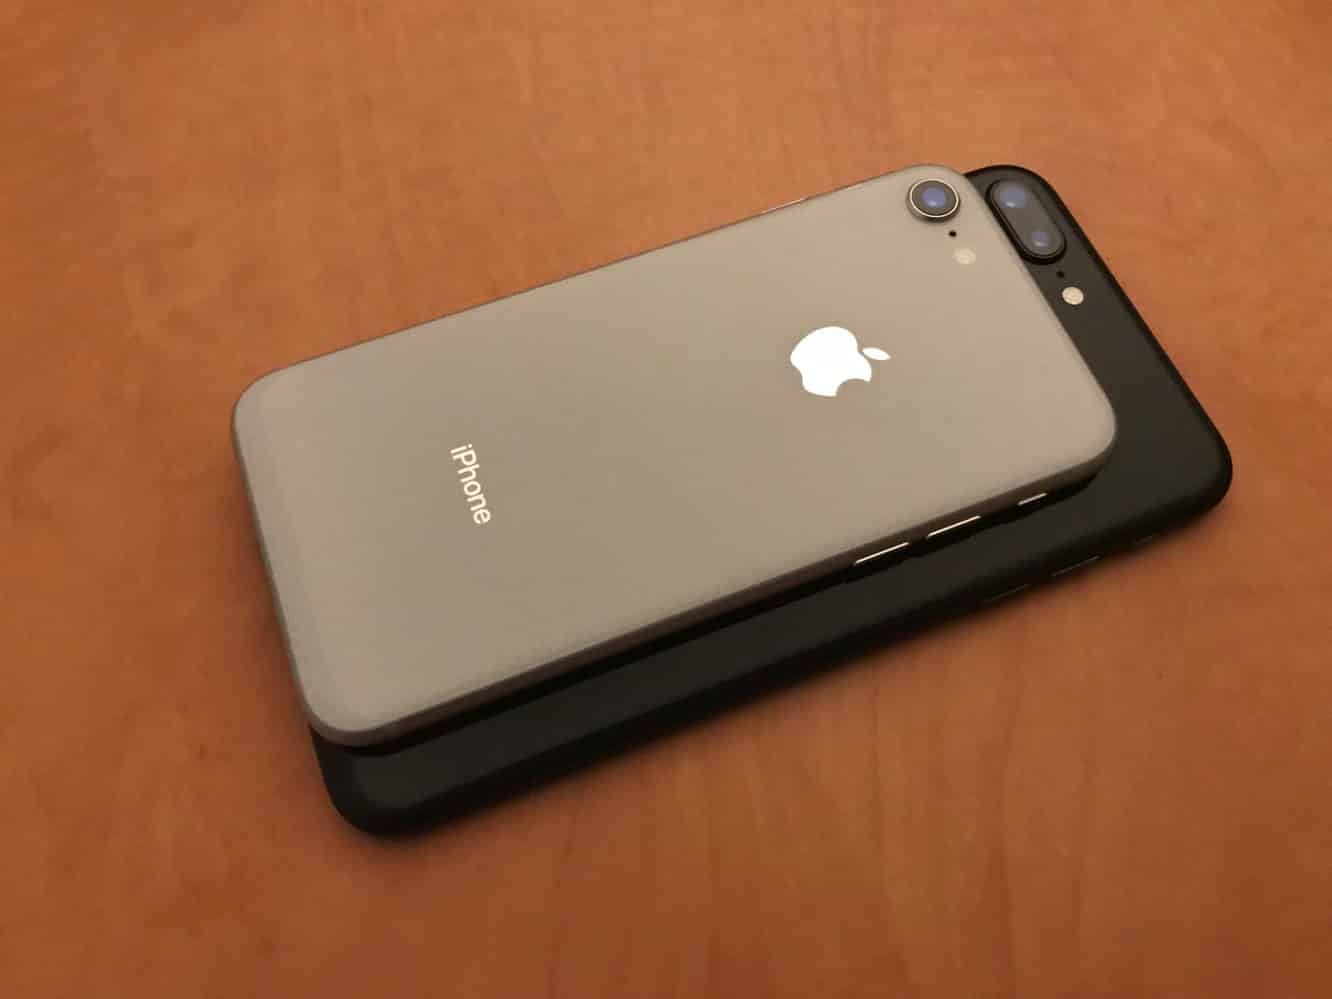 2017 iPhone models less susceptible to performance throttling